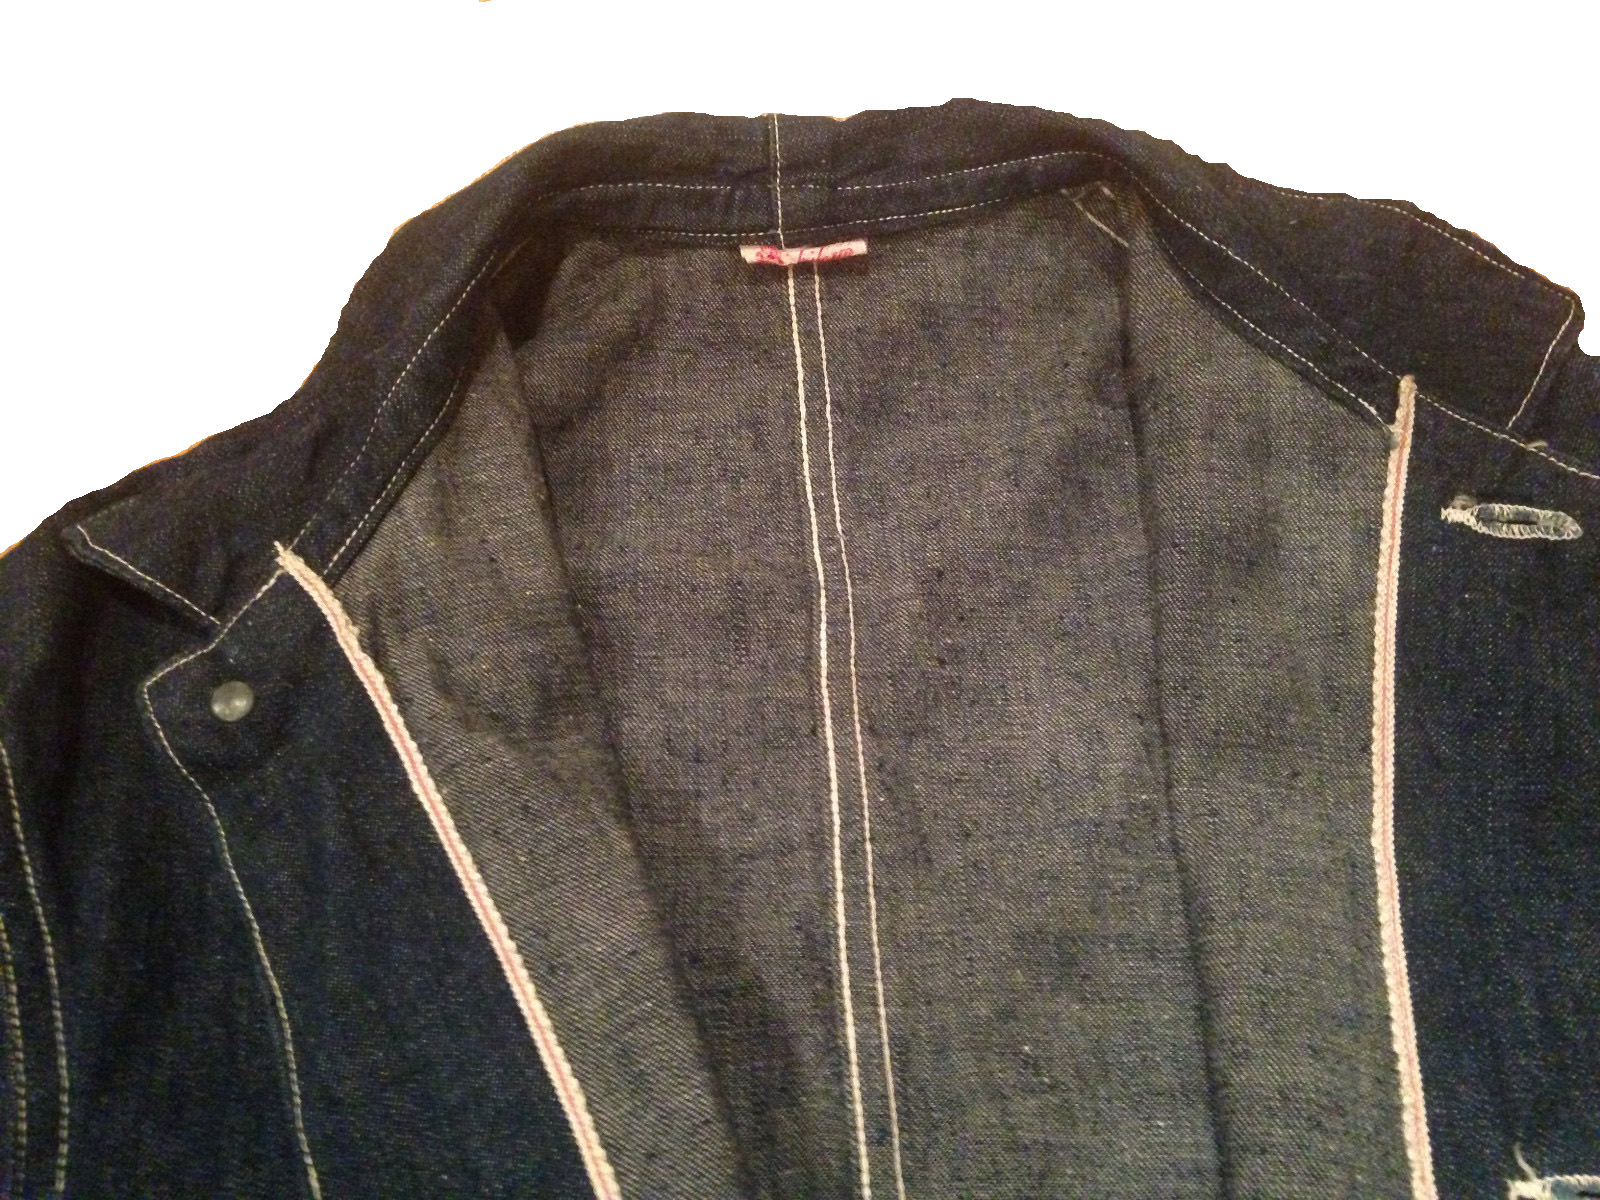 826d31ff93 CANTRIPUM brand union made two pocket denim jacket manufactured by Hooker